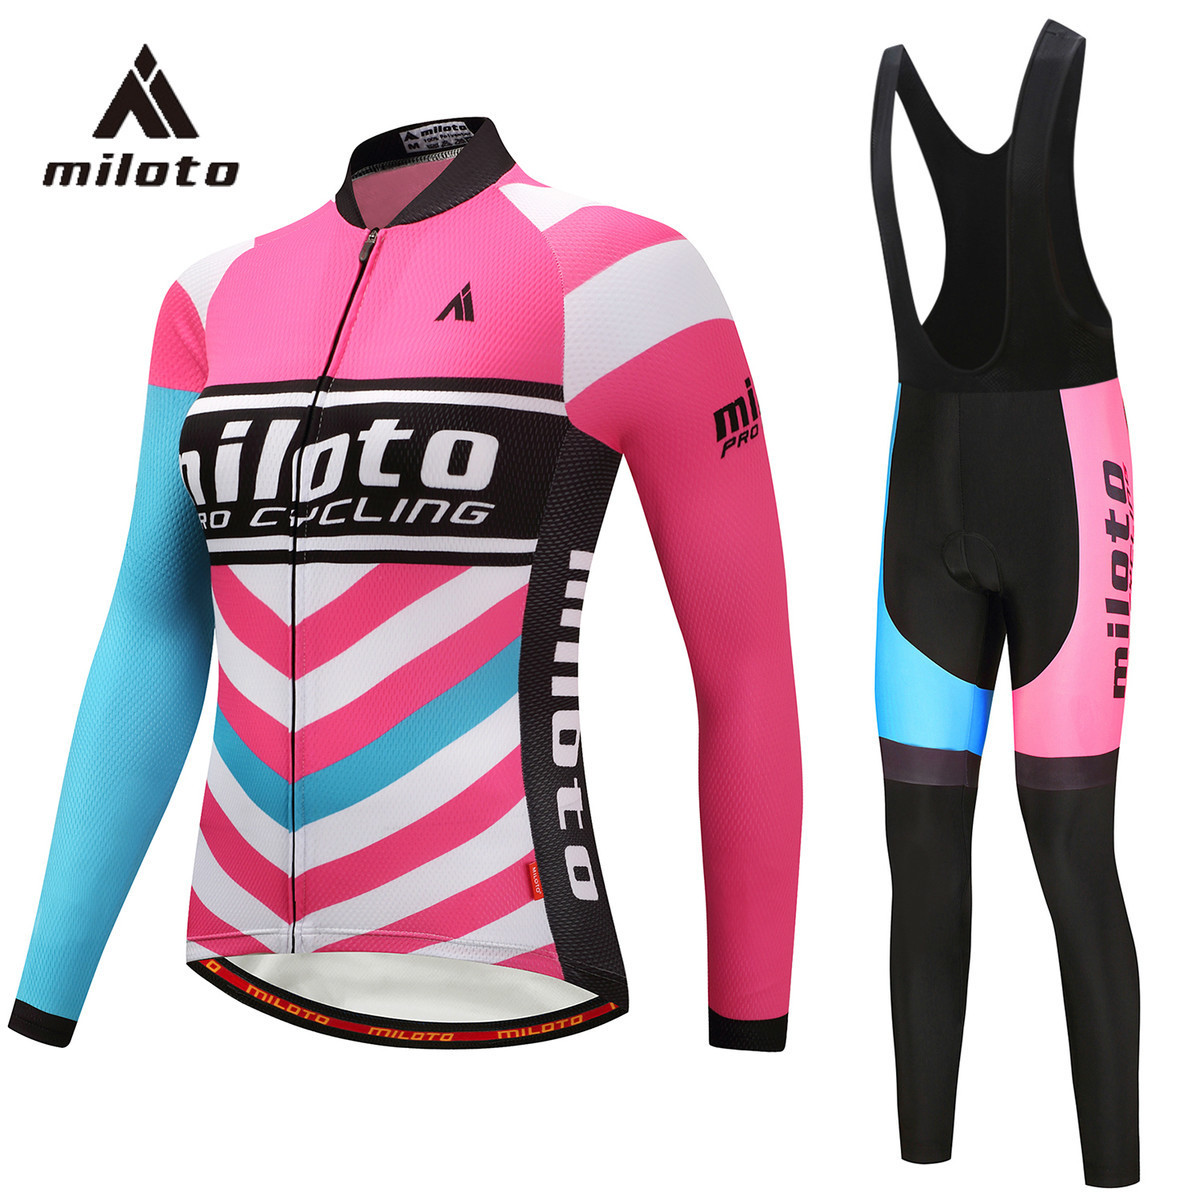 2aaf10004 MILOTO Thin Long Sleeve Cycling Set Women Cycling Uniform GEL Female Clothes  Full Cycling 2018 Bicycle